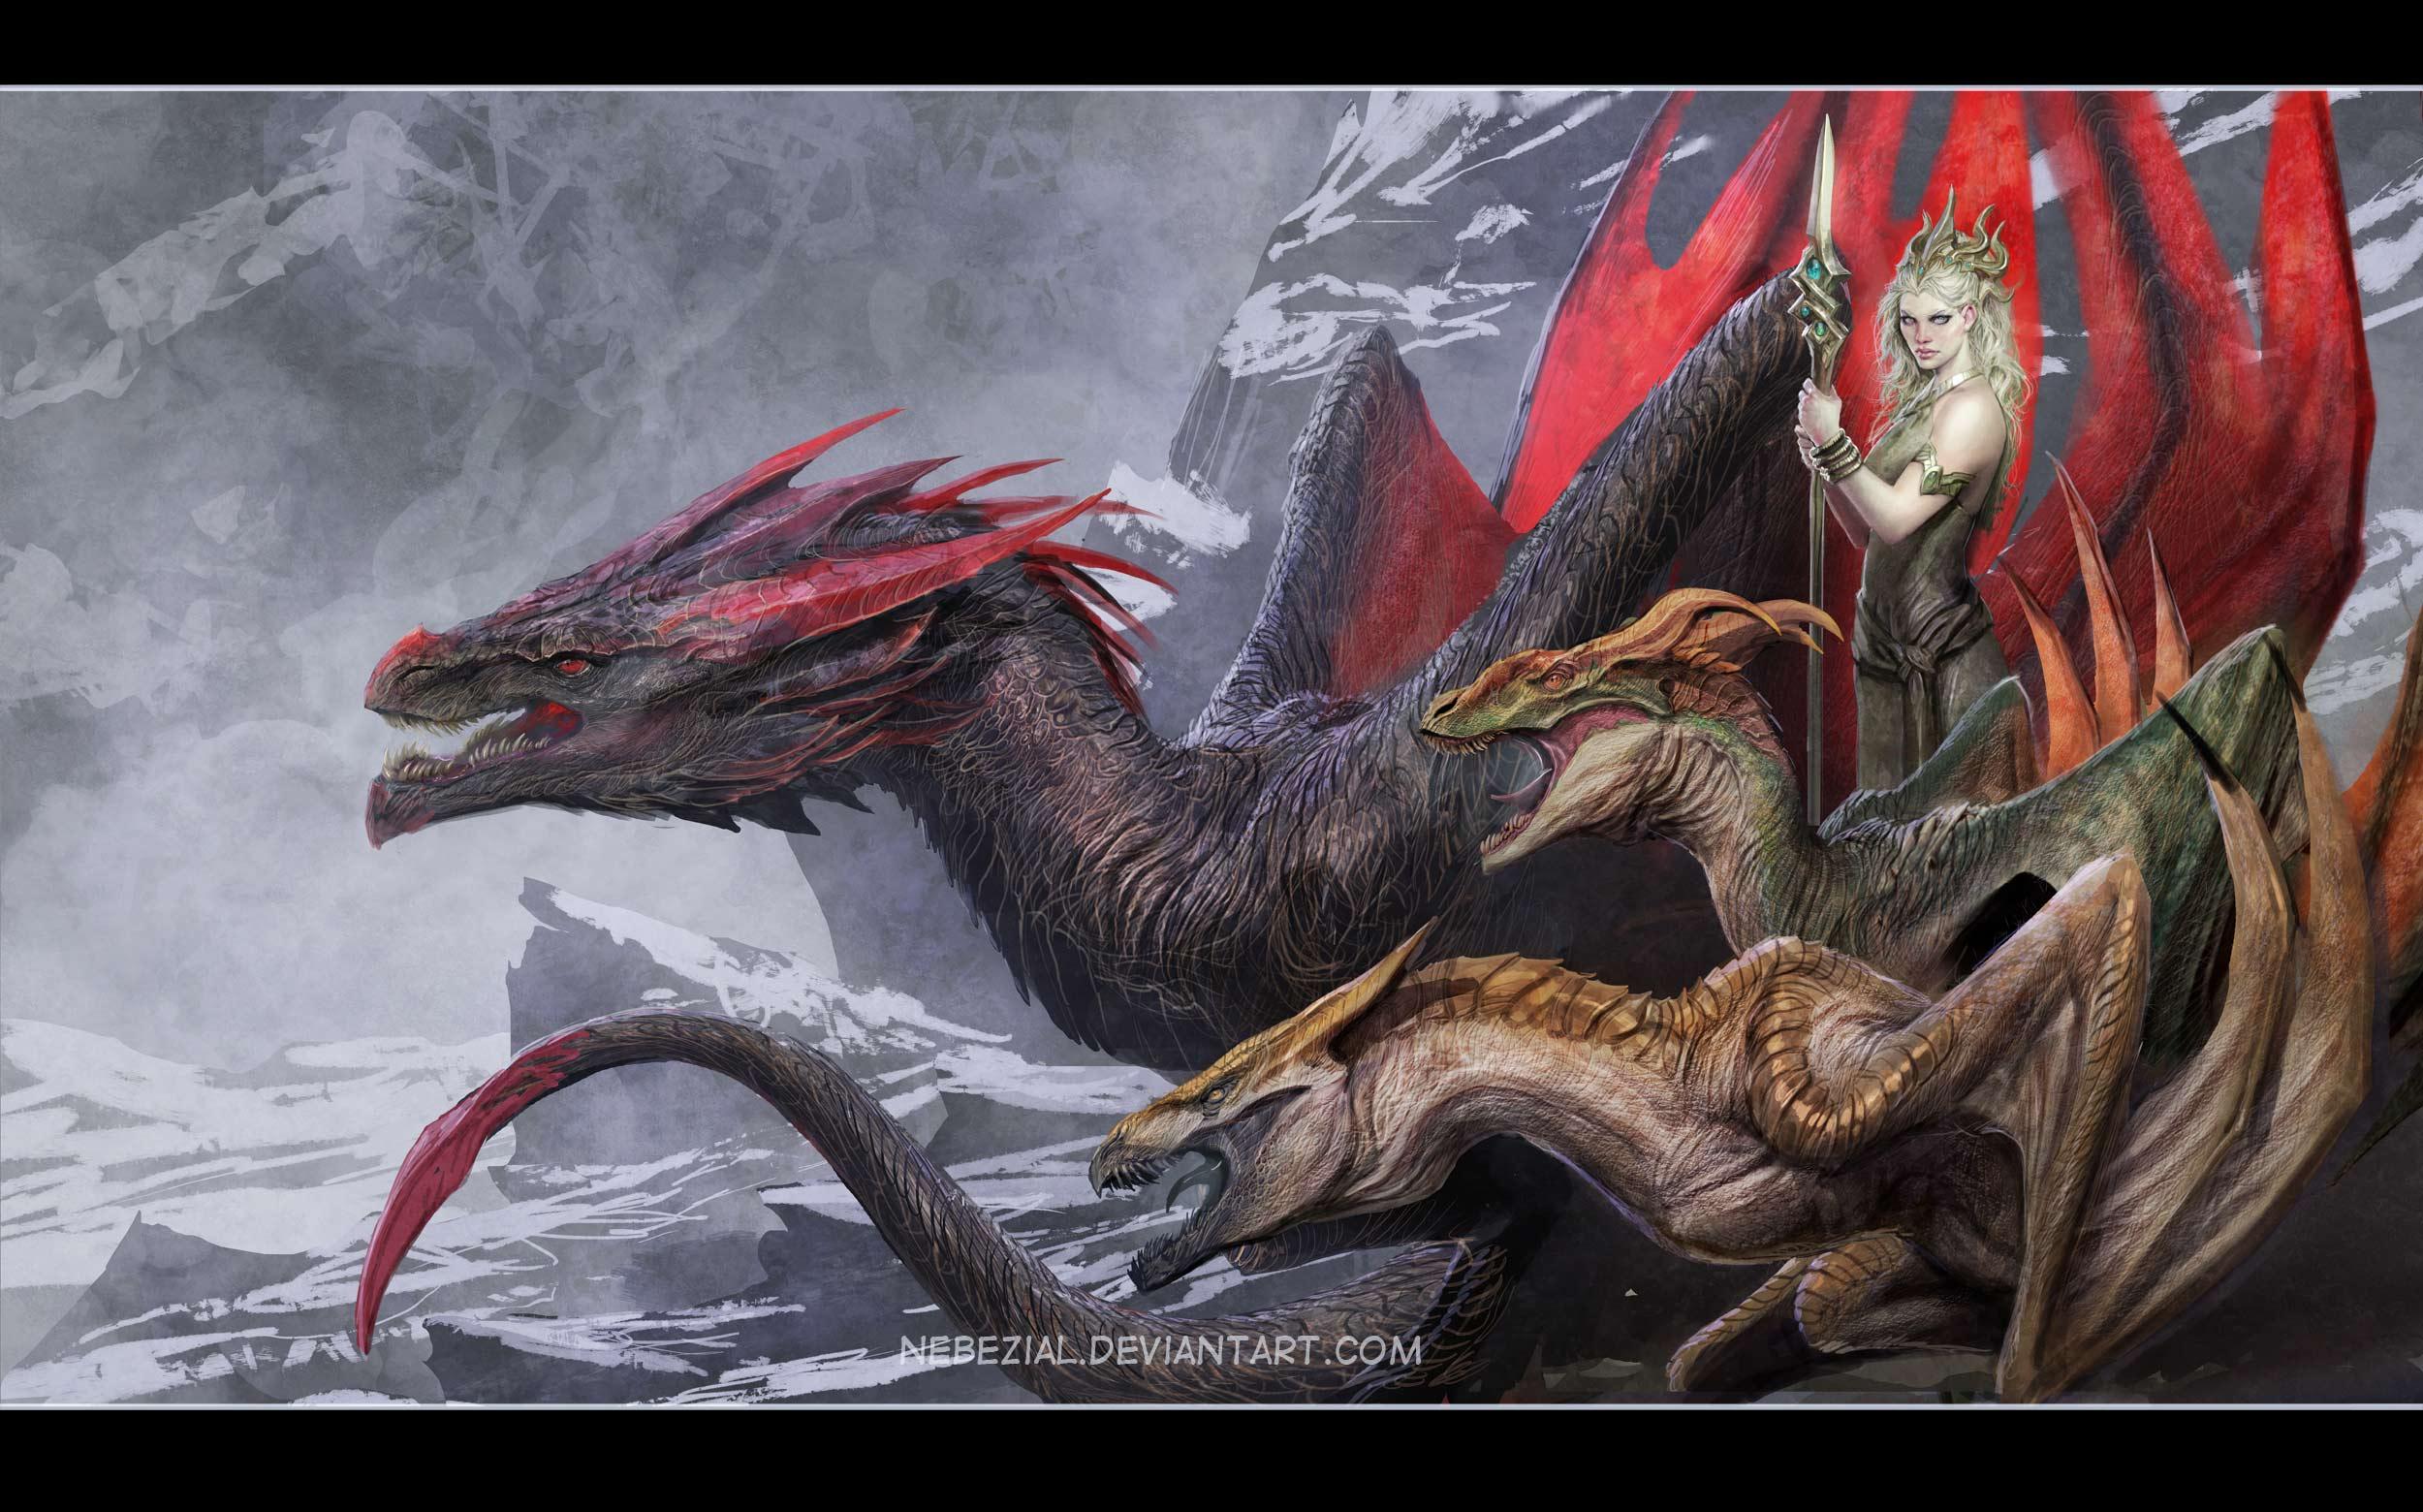 so it turns out it was daenerys... who knew ? XD